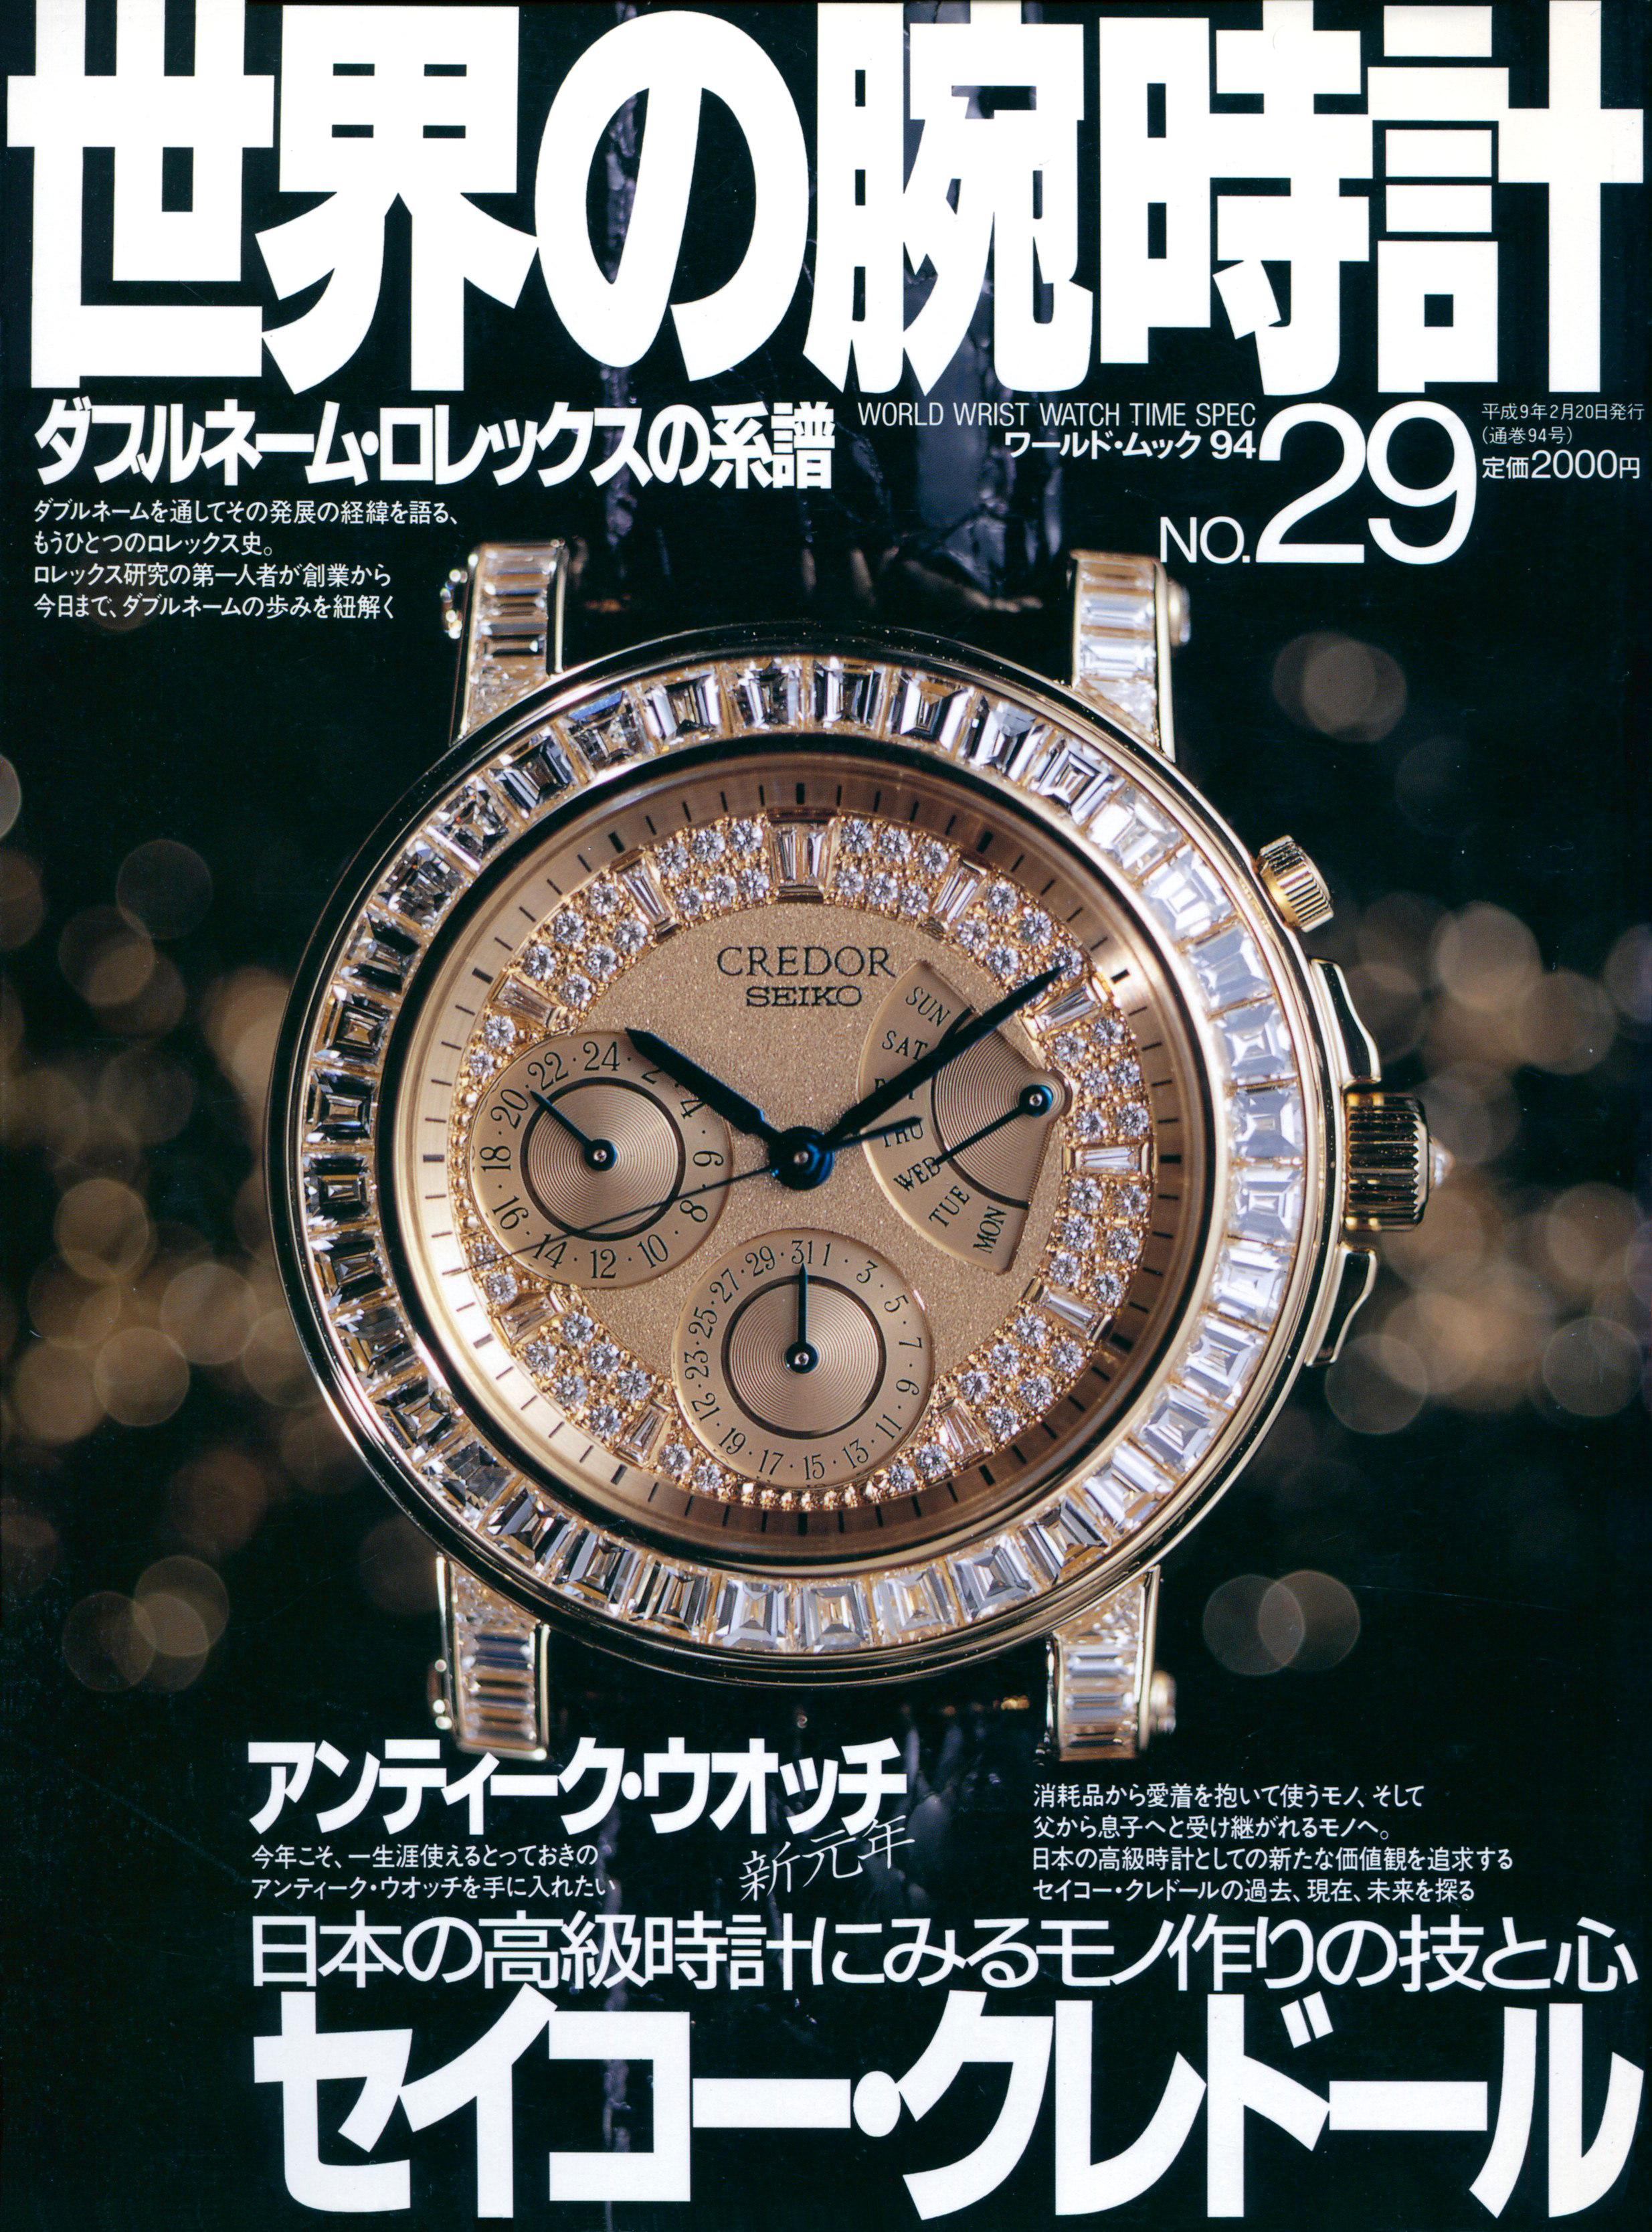 Cover -World Wrist Watch Time Spec No. 29